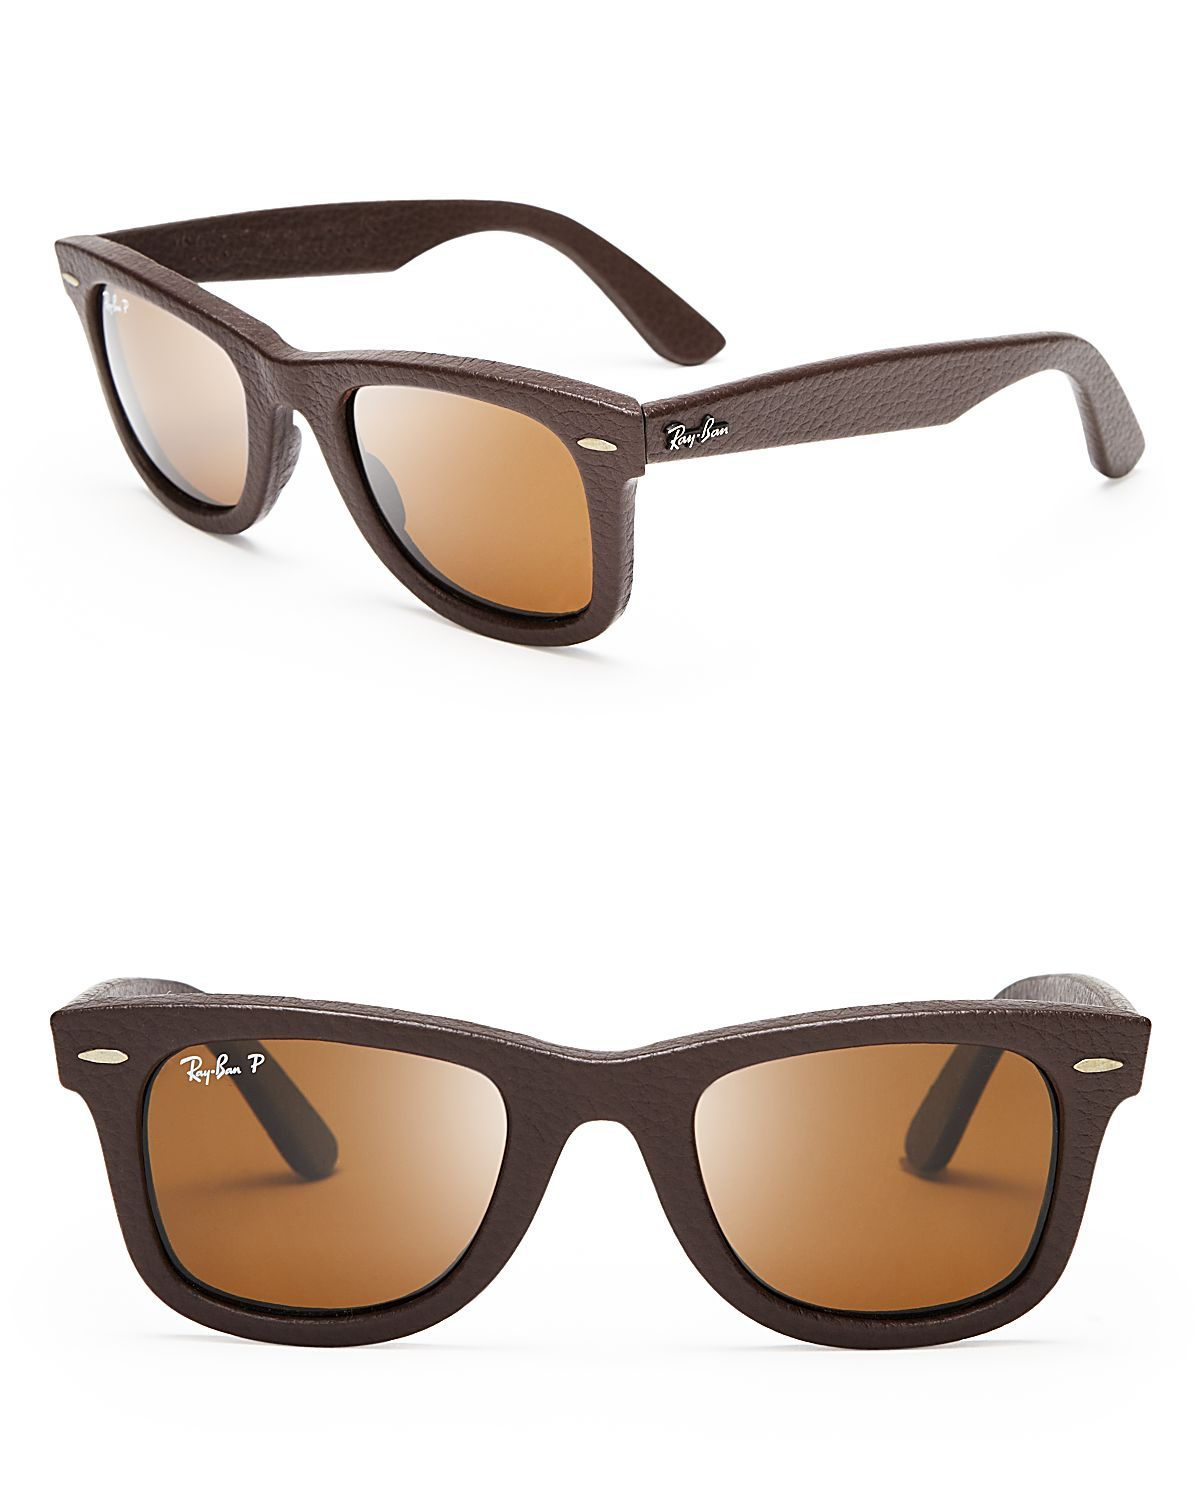 96f6236114 Gallery. Previously sold at  Bloomingdale s · Men s Wayfarer Sunglasses  Men s Ray Ban ...